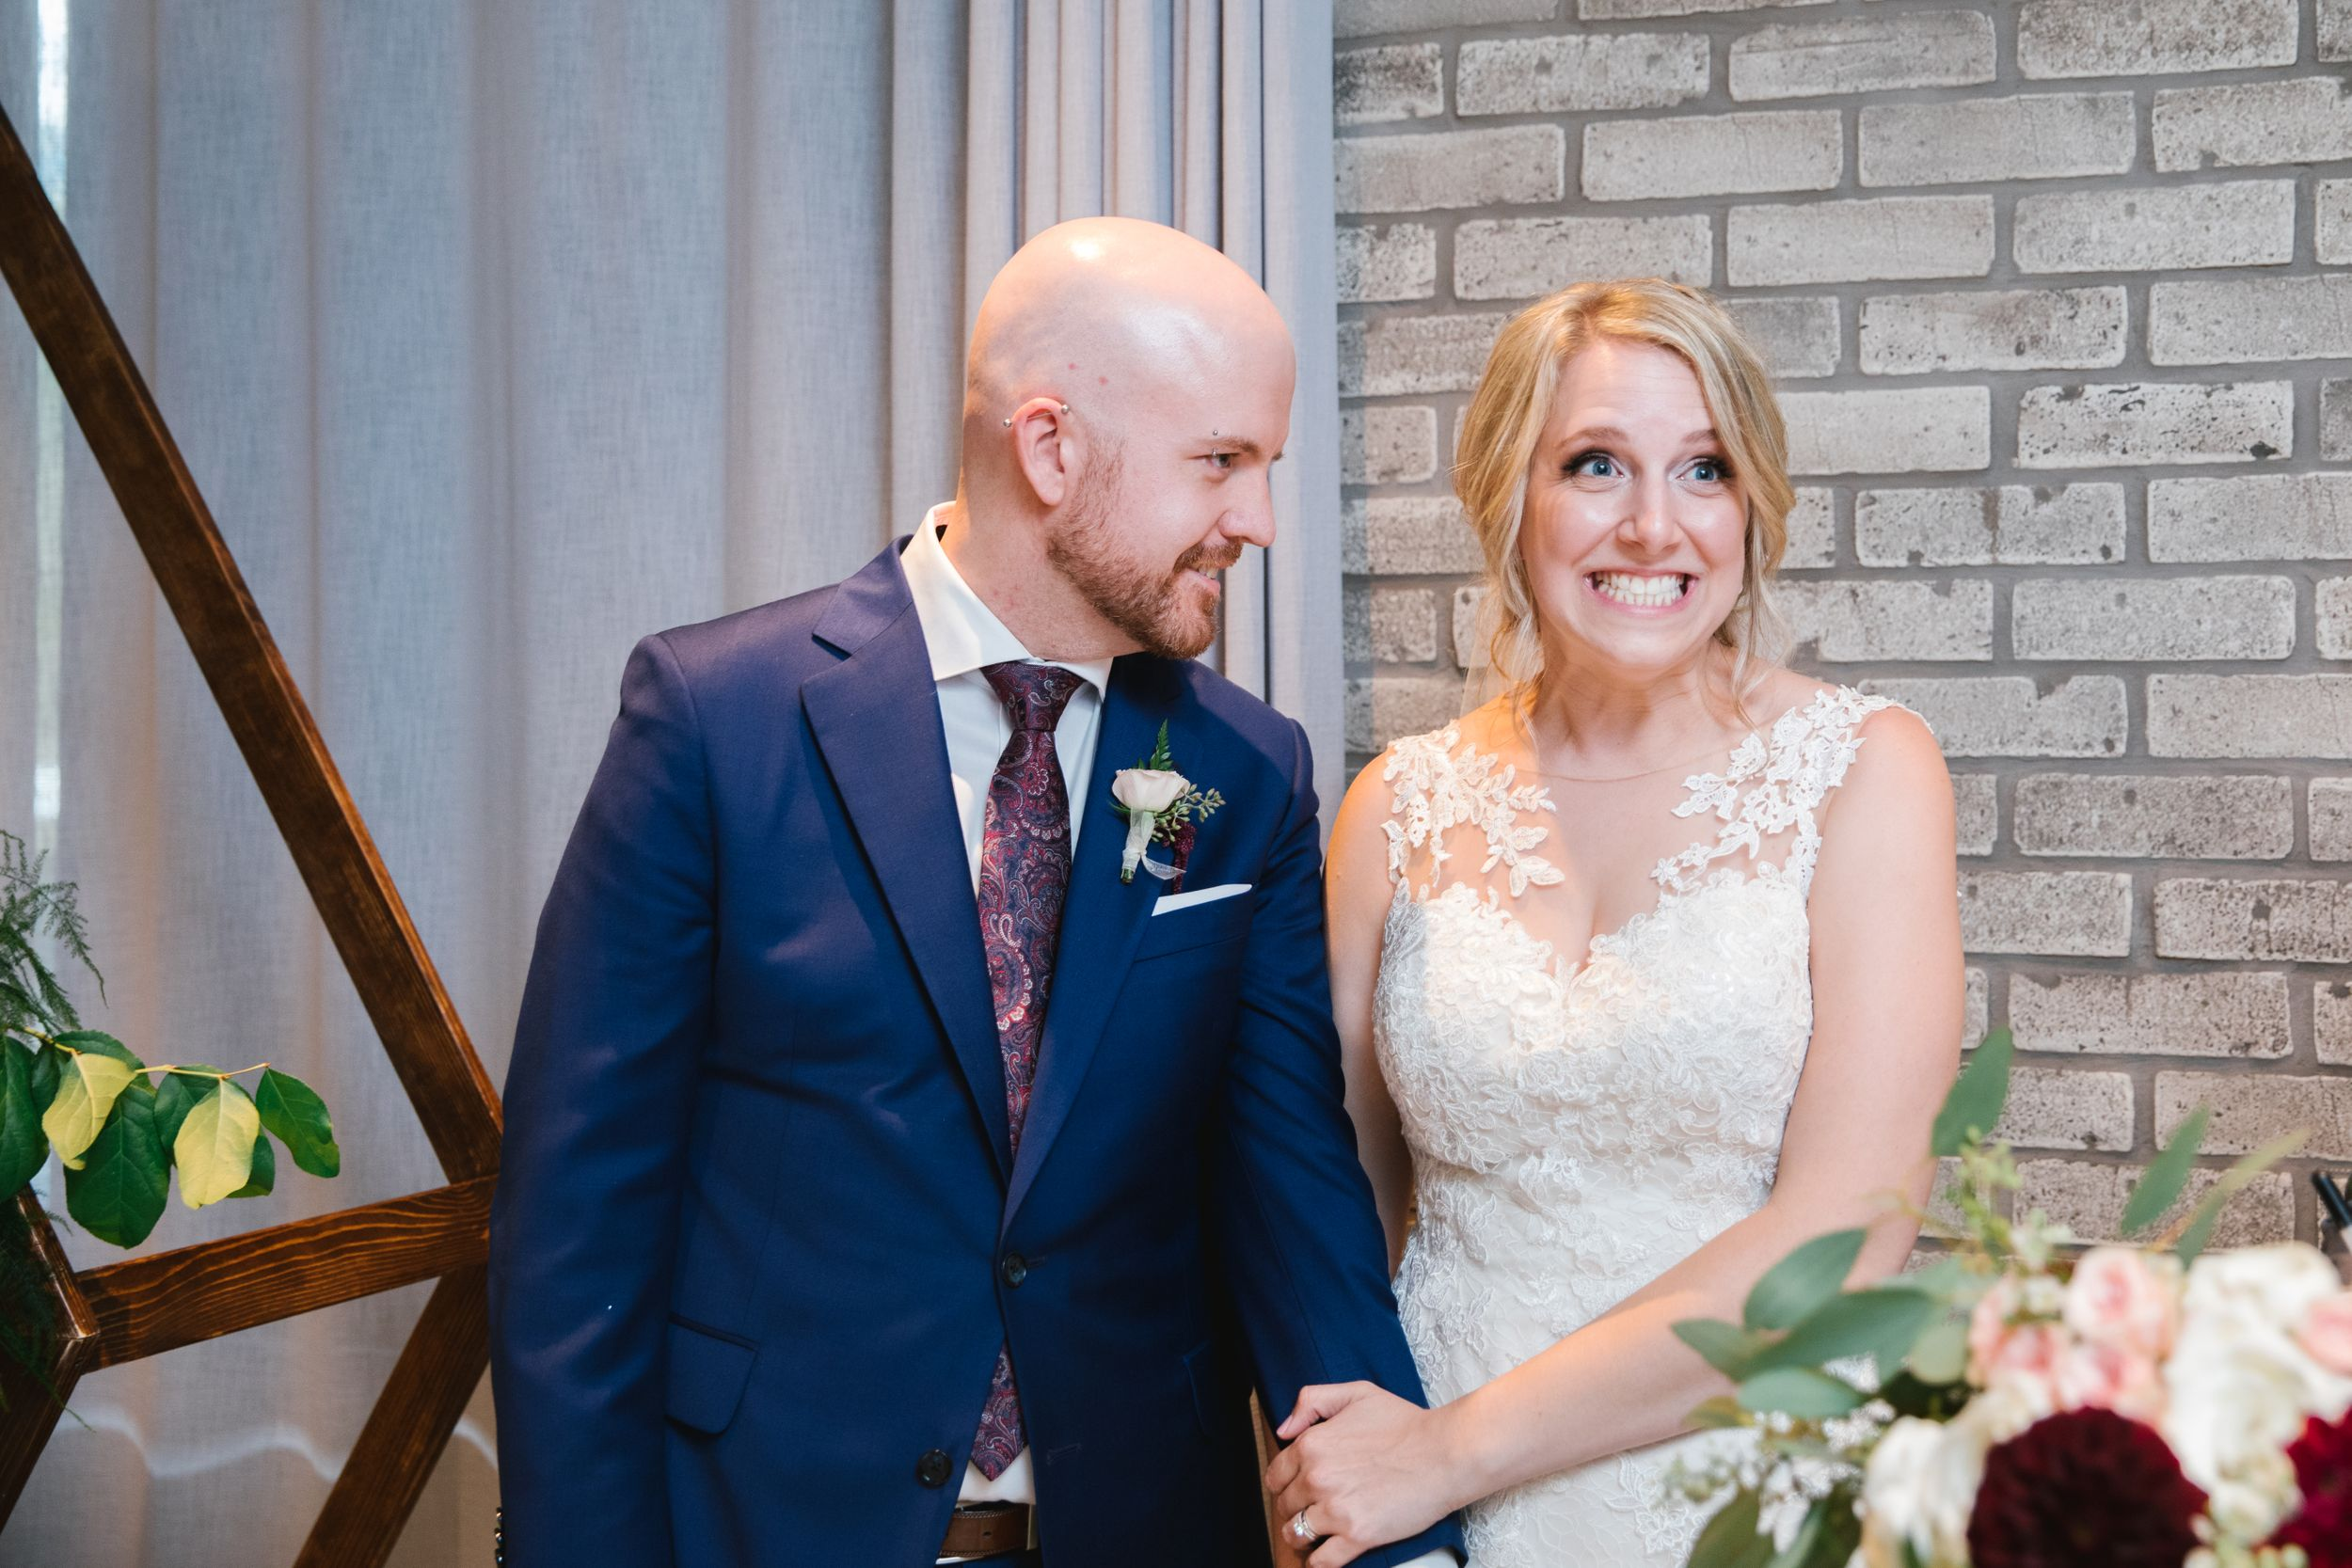 bride pulling a face while groom looks at her and smiles with brick wall behind